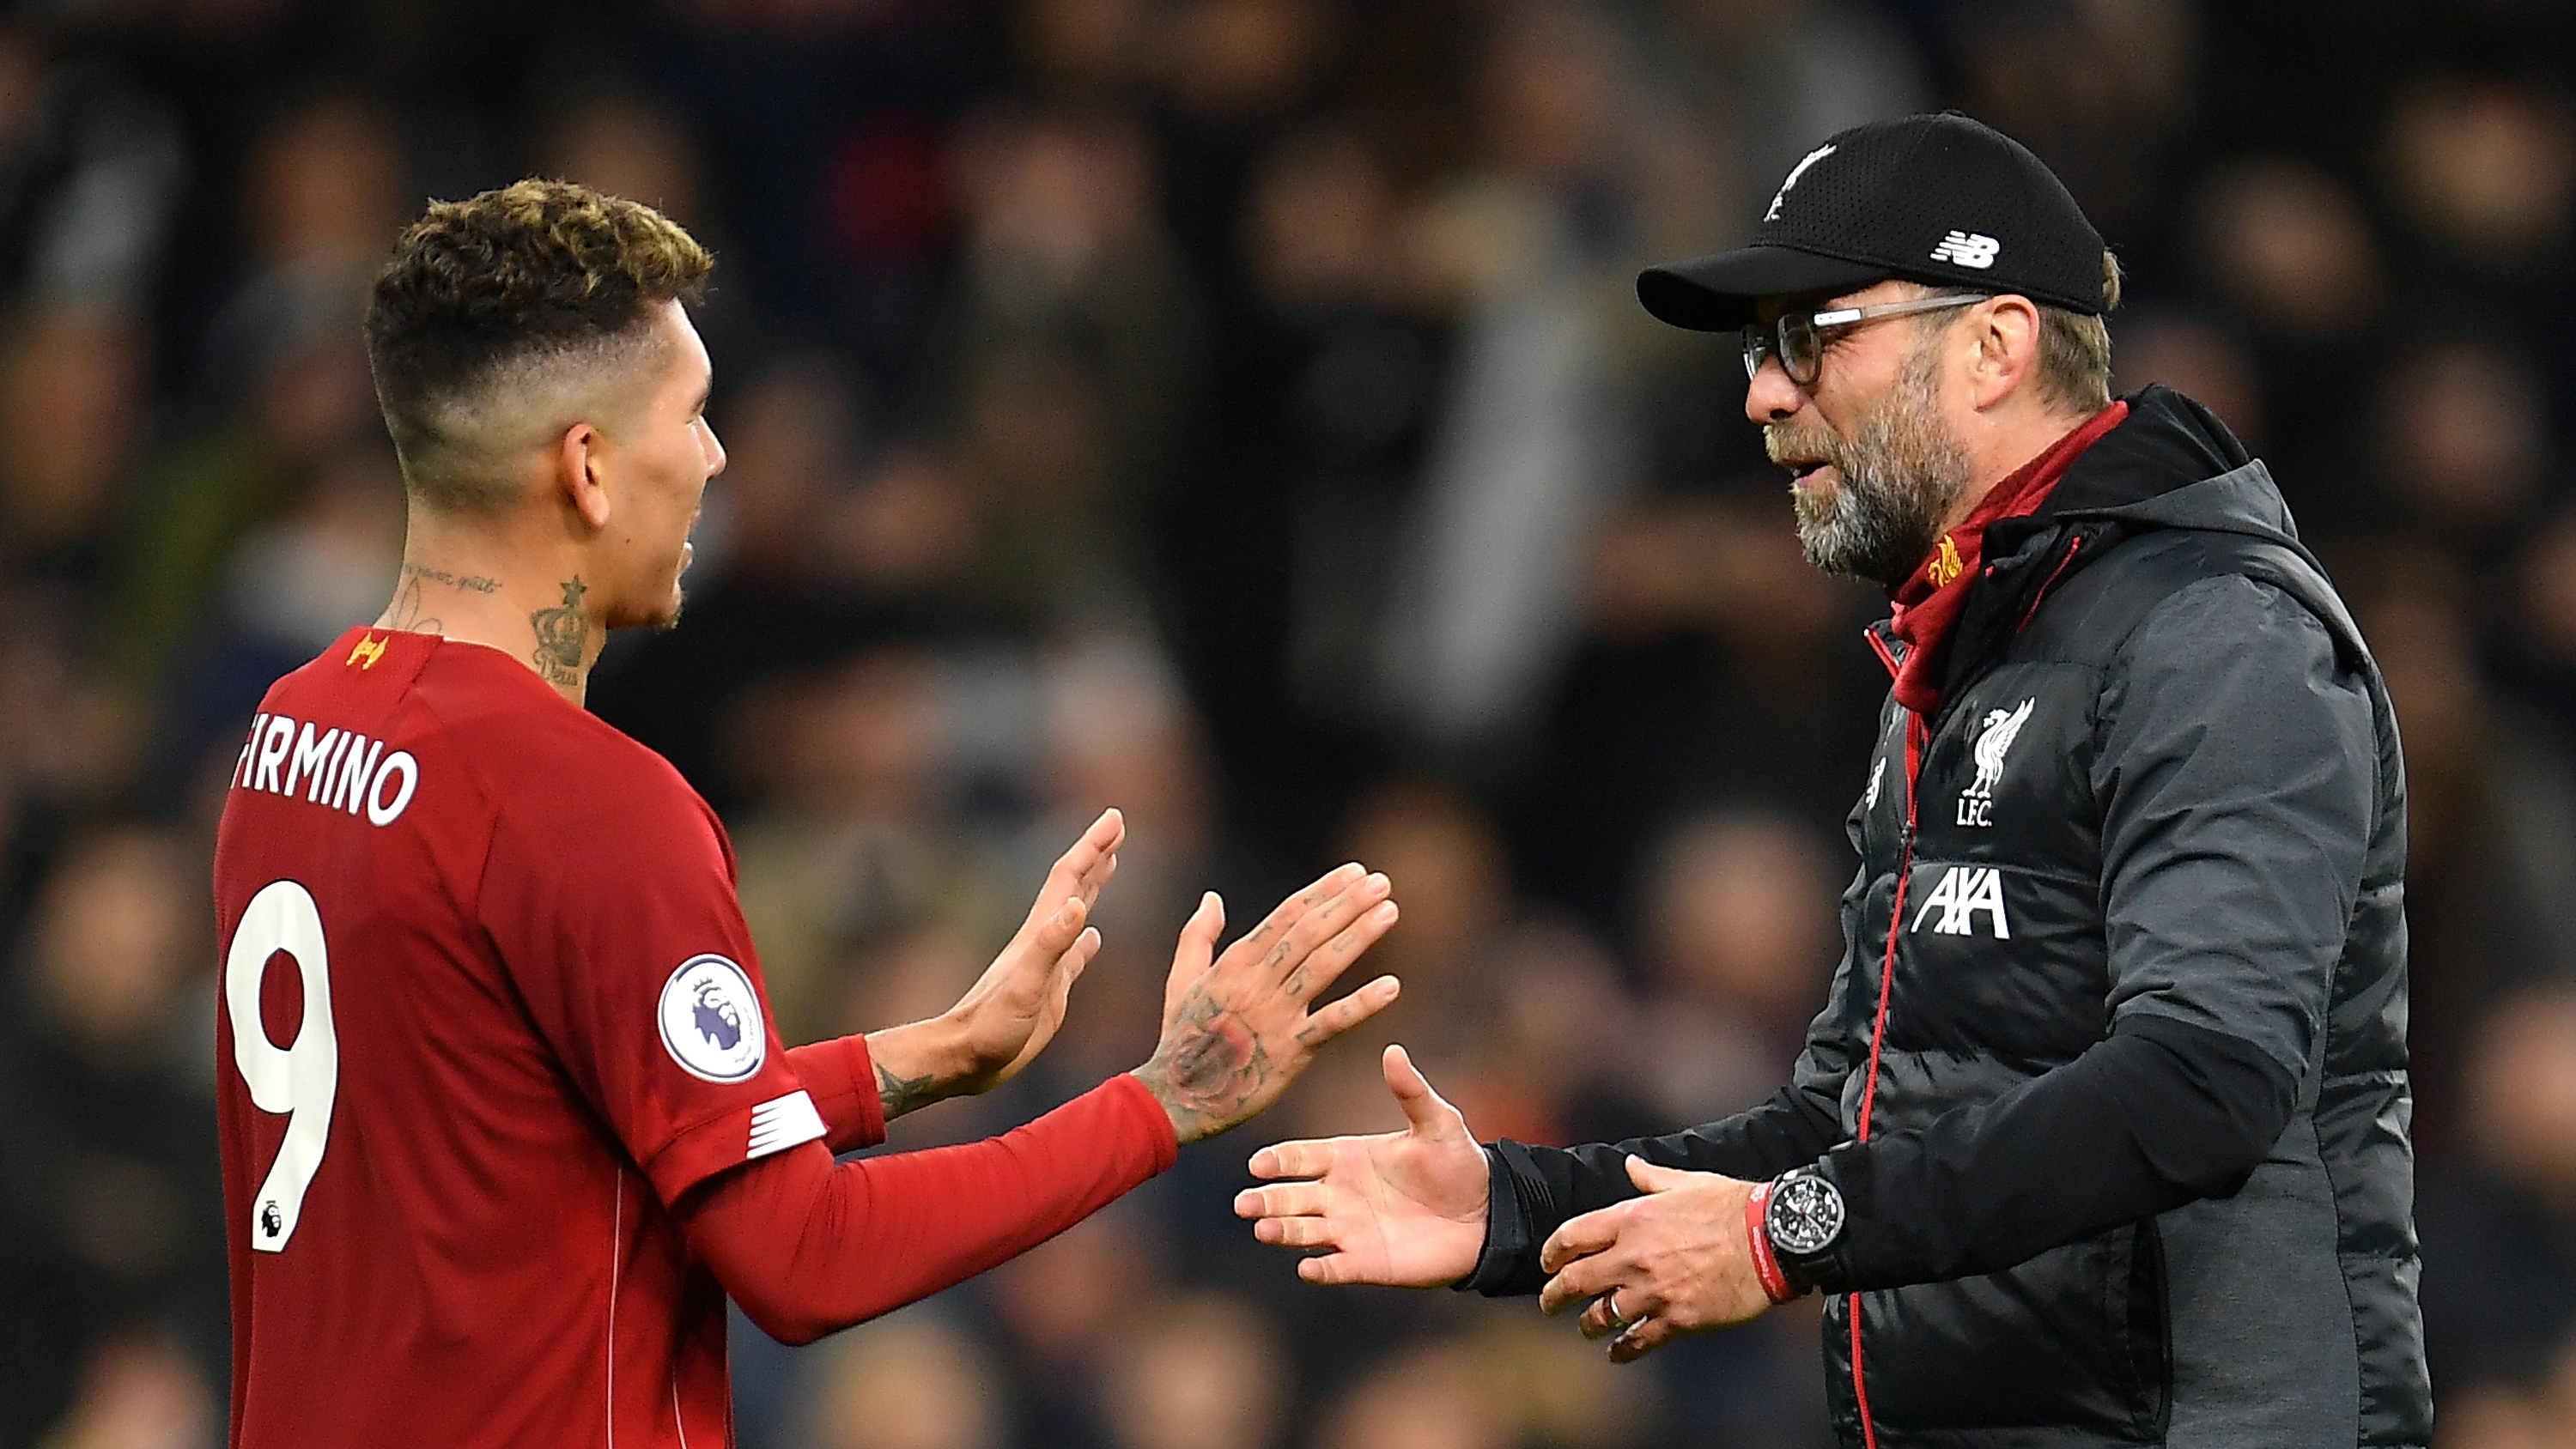 'It's not important who scores' - Klopp plays down Firmino's Liverpool home goal drought